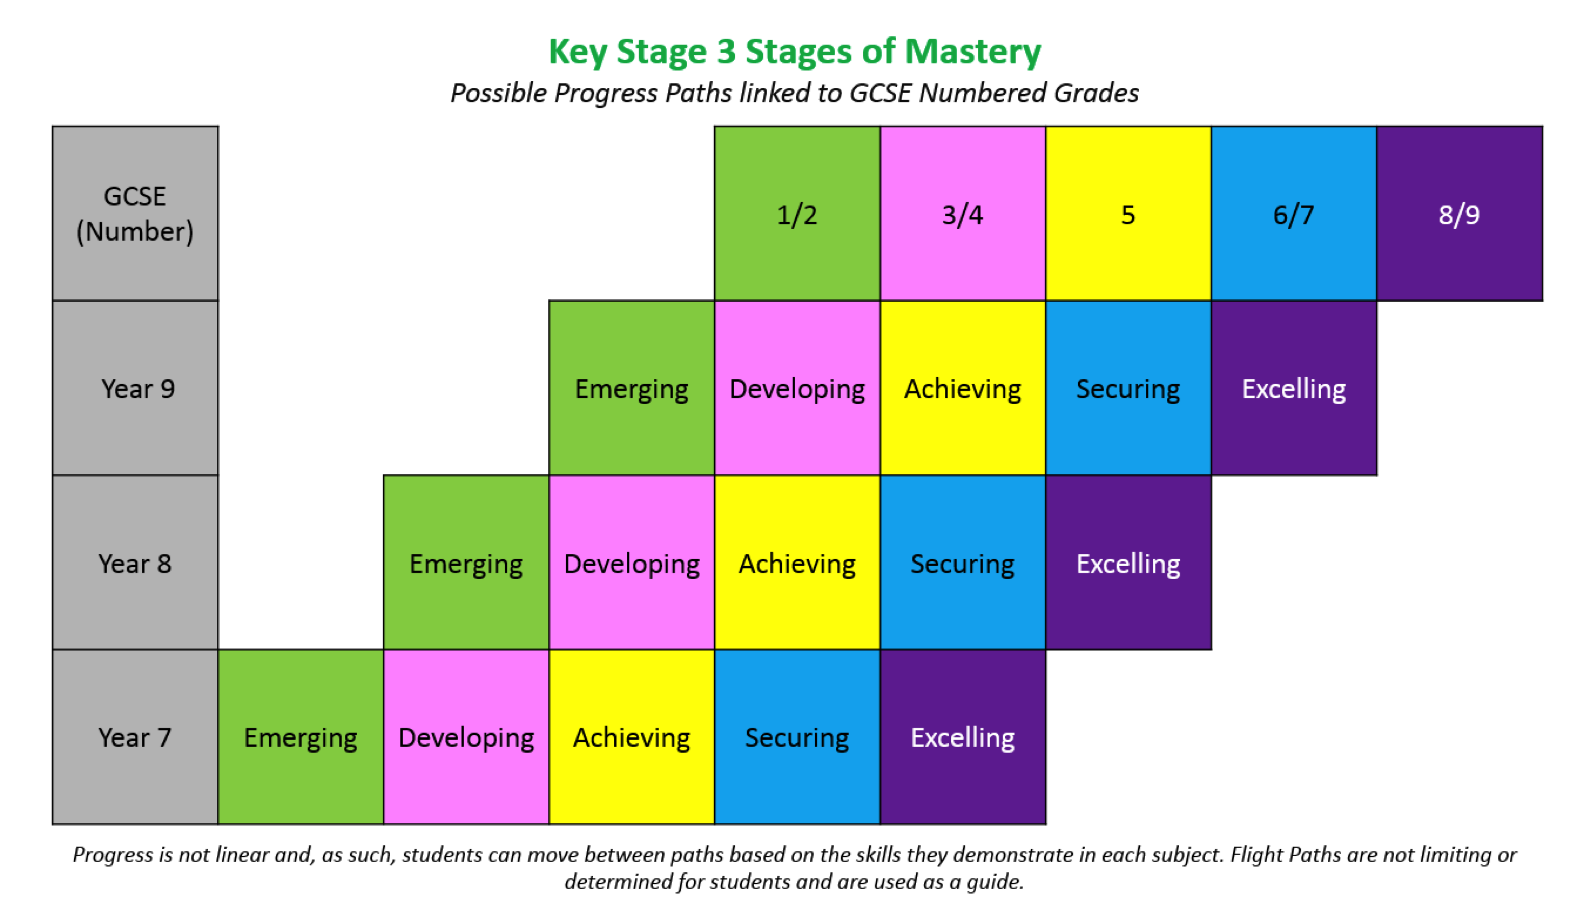 assessment at key stage 3 Assessment at key stage 3 has changed from september 2015 due to the government's decision to get rid of assessment using levels students in year 6 in 2014/15 will have received a national curriculum level for their sats in july 2015.